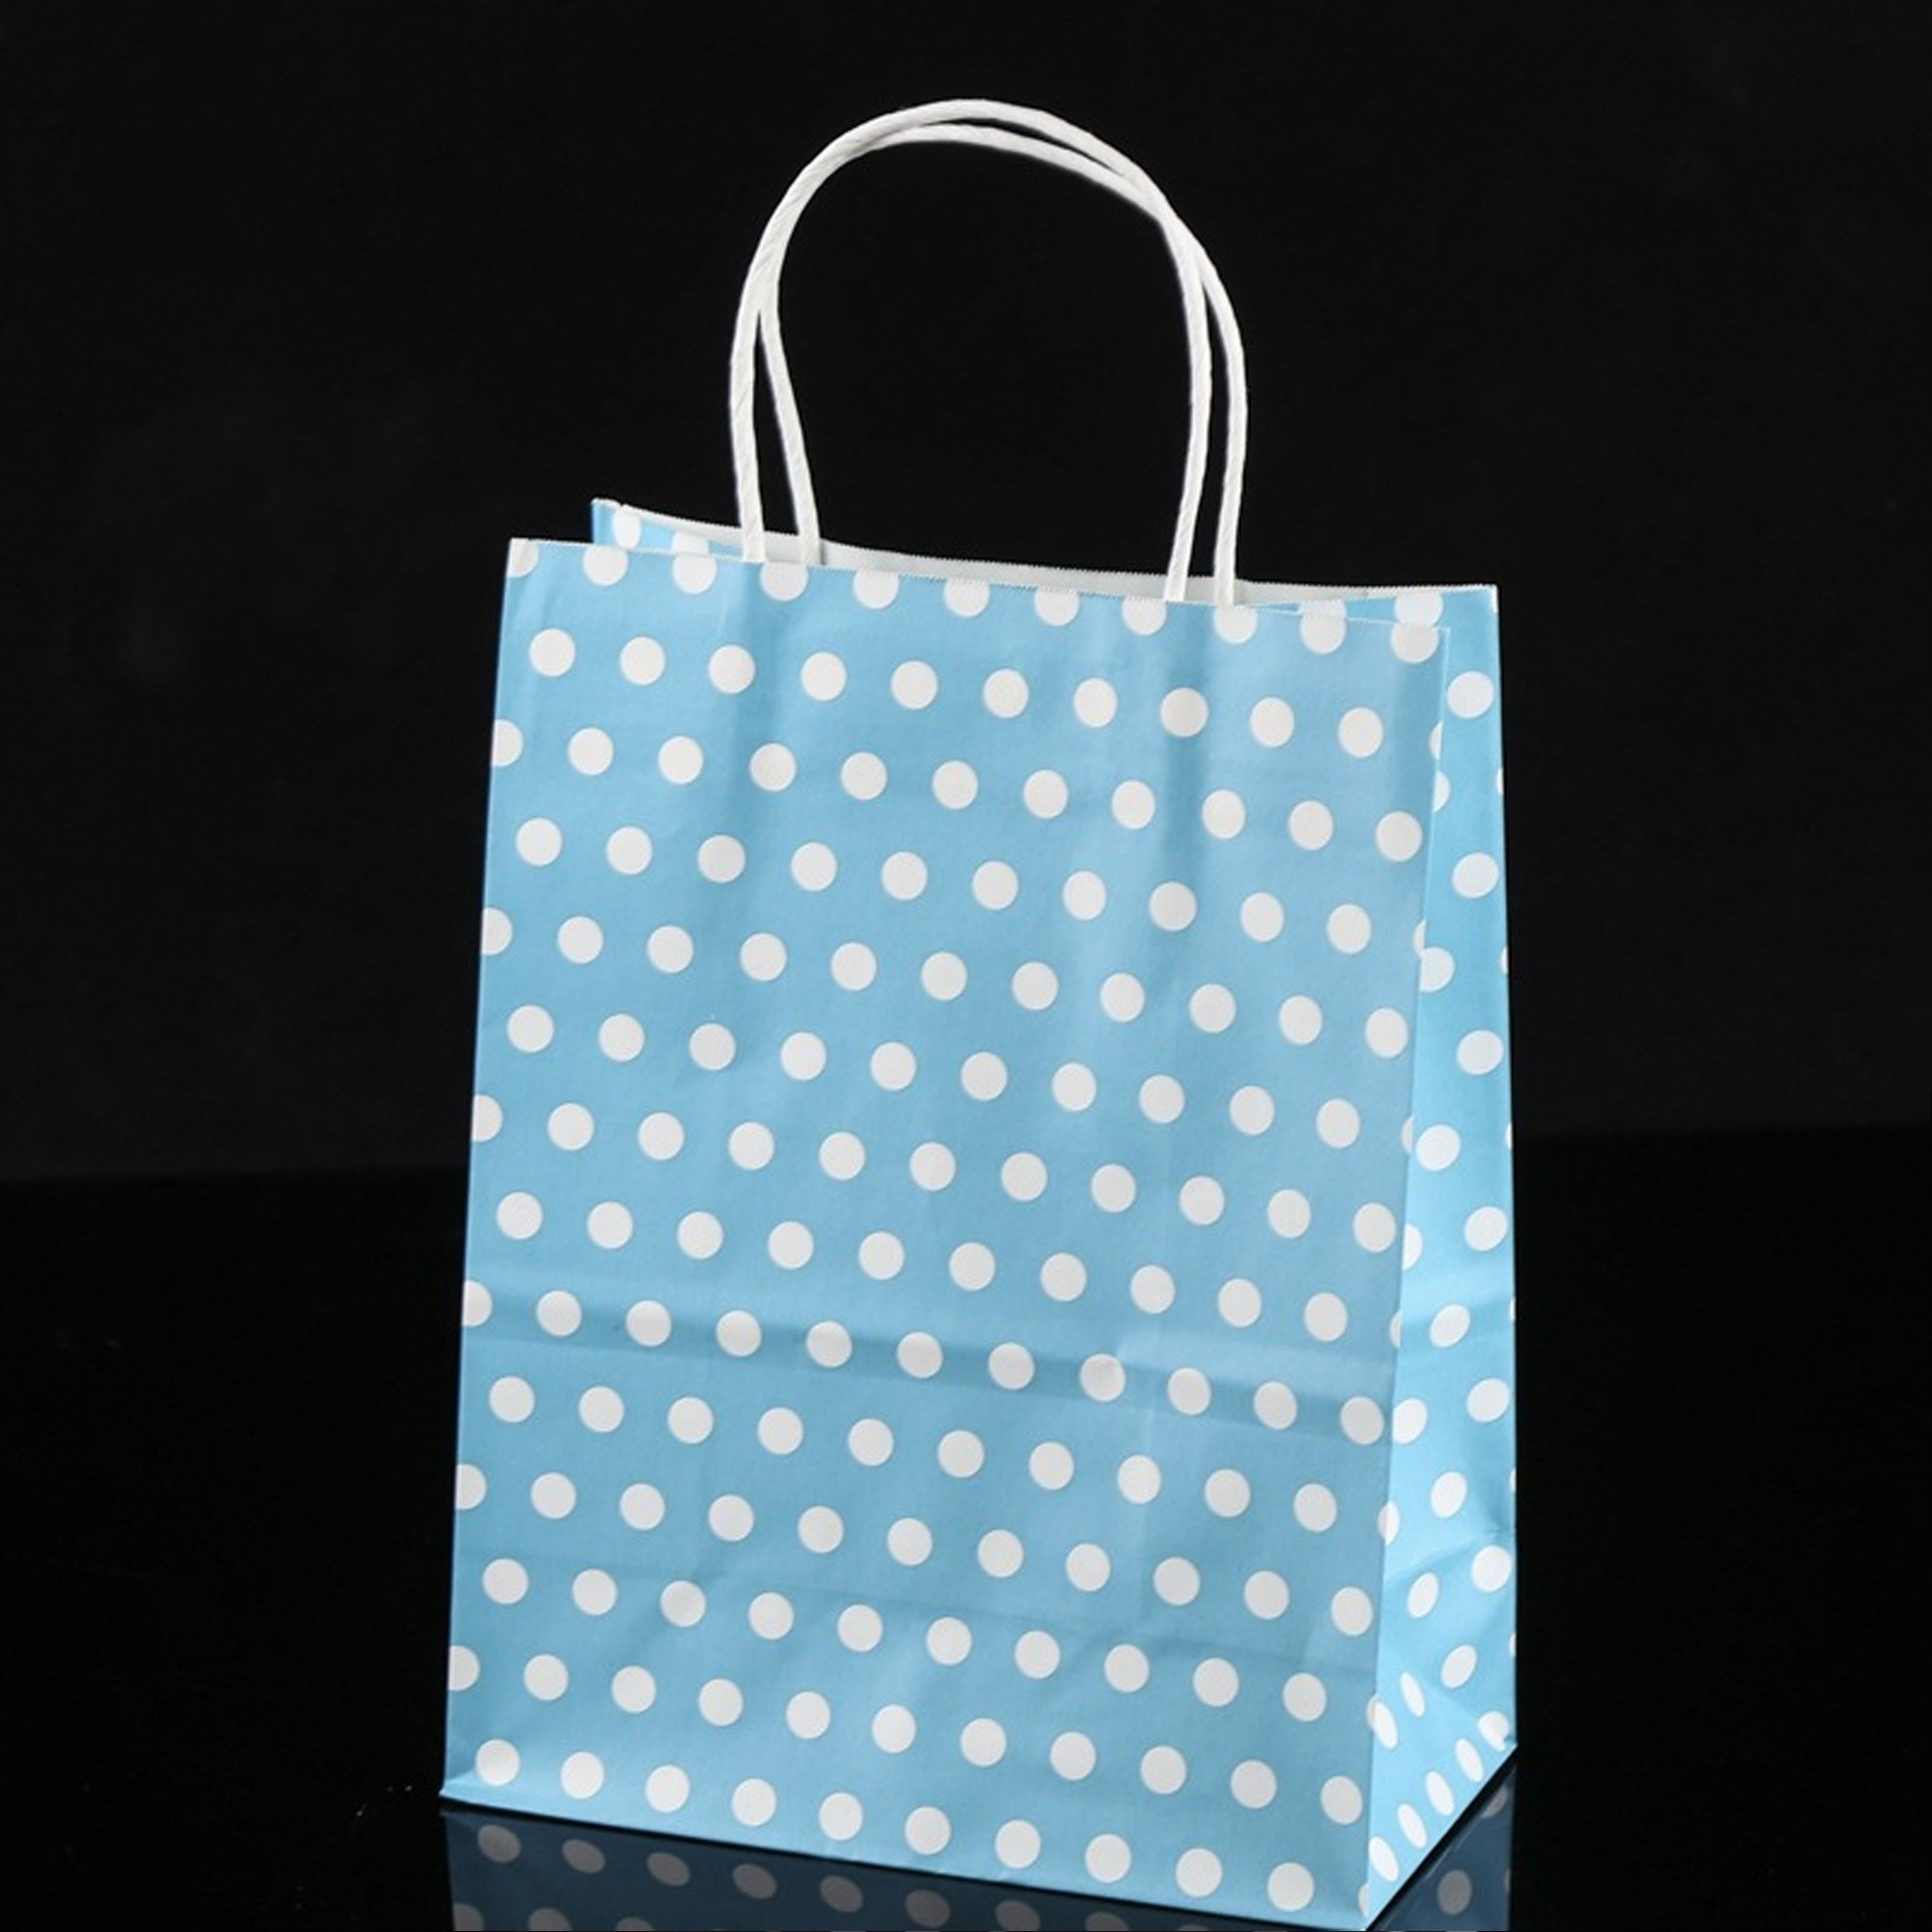 Blue & White Polka Dot Paper Gift Bags 5.9 inch x 3.3 inch x 8.3 inch (36 Bags/Lot)